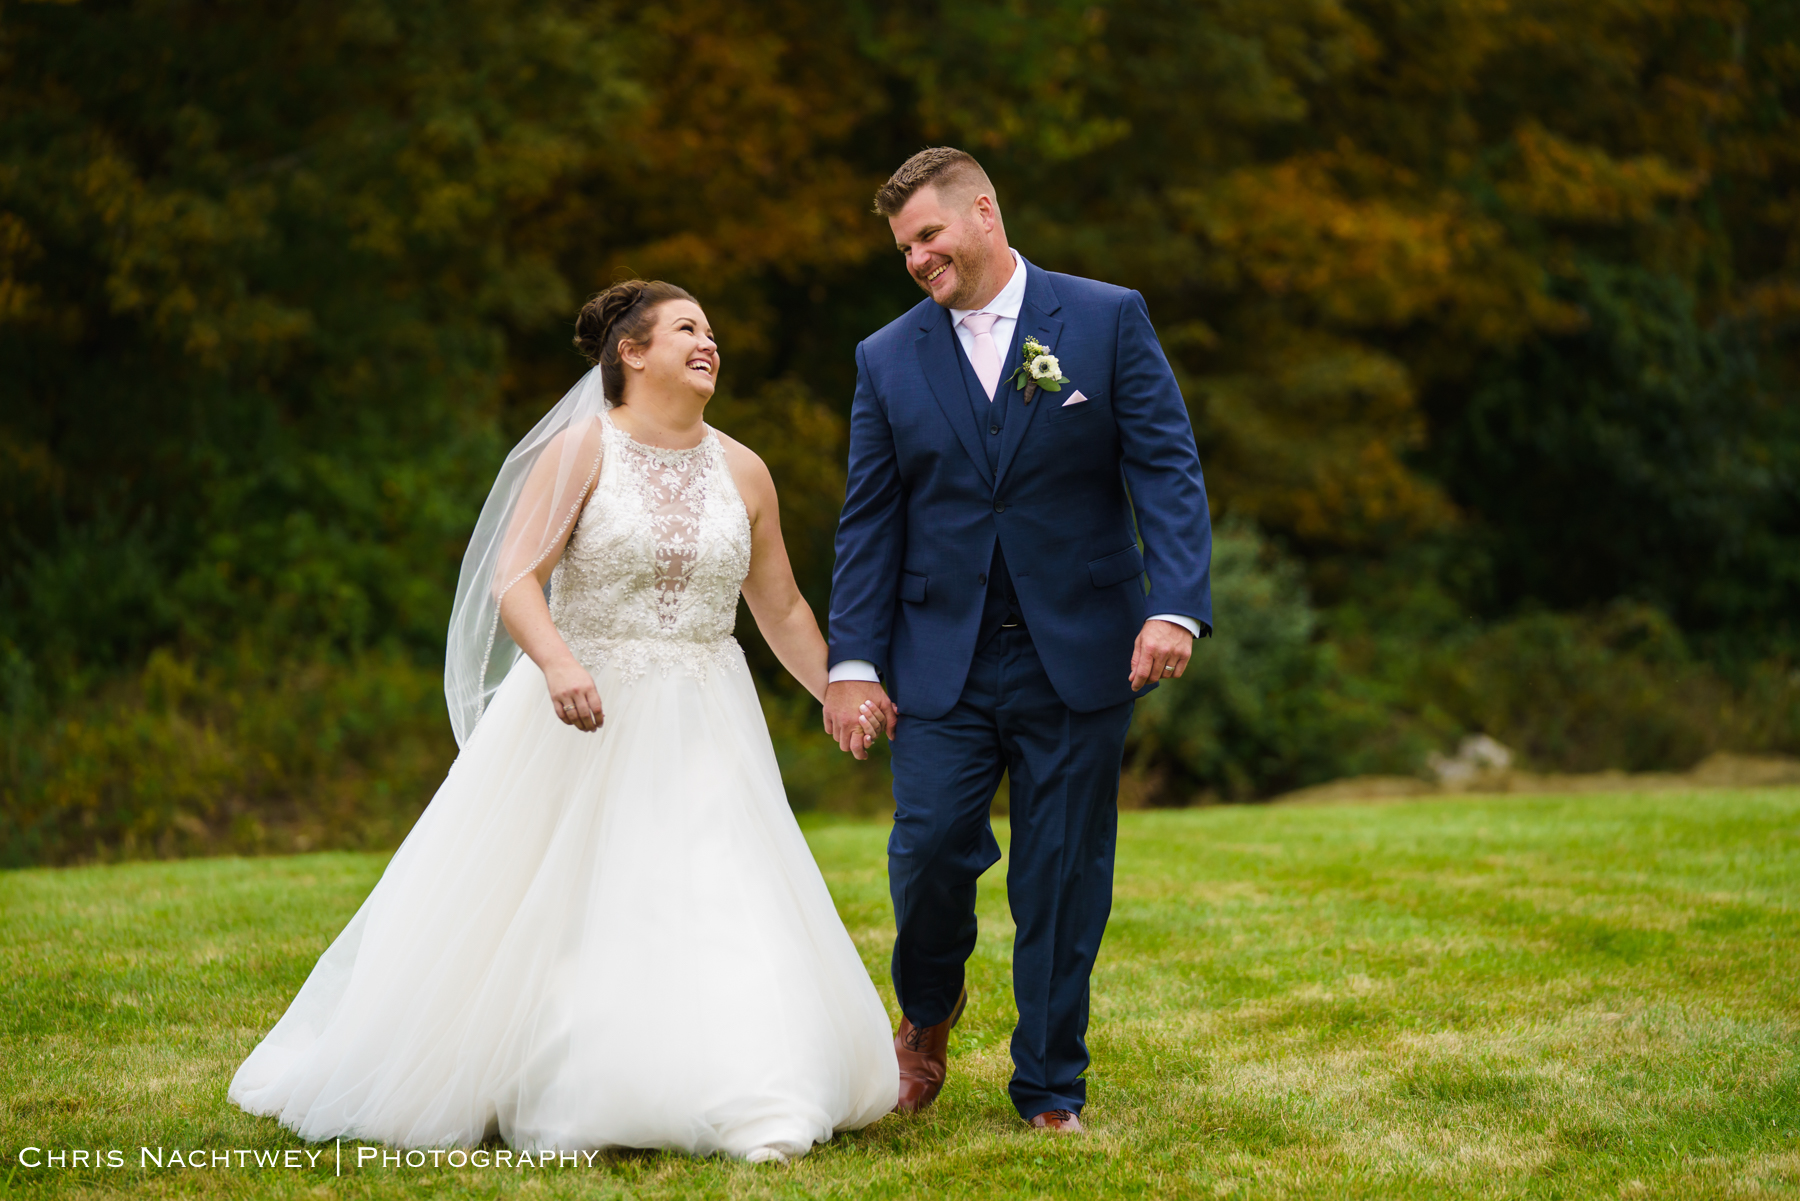 wedding-photographers-connecticut-affordable-chris-nachtwey-photography-2019-21.jpg